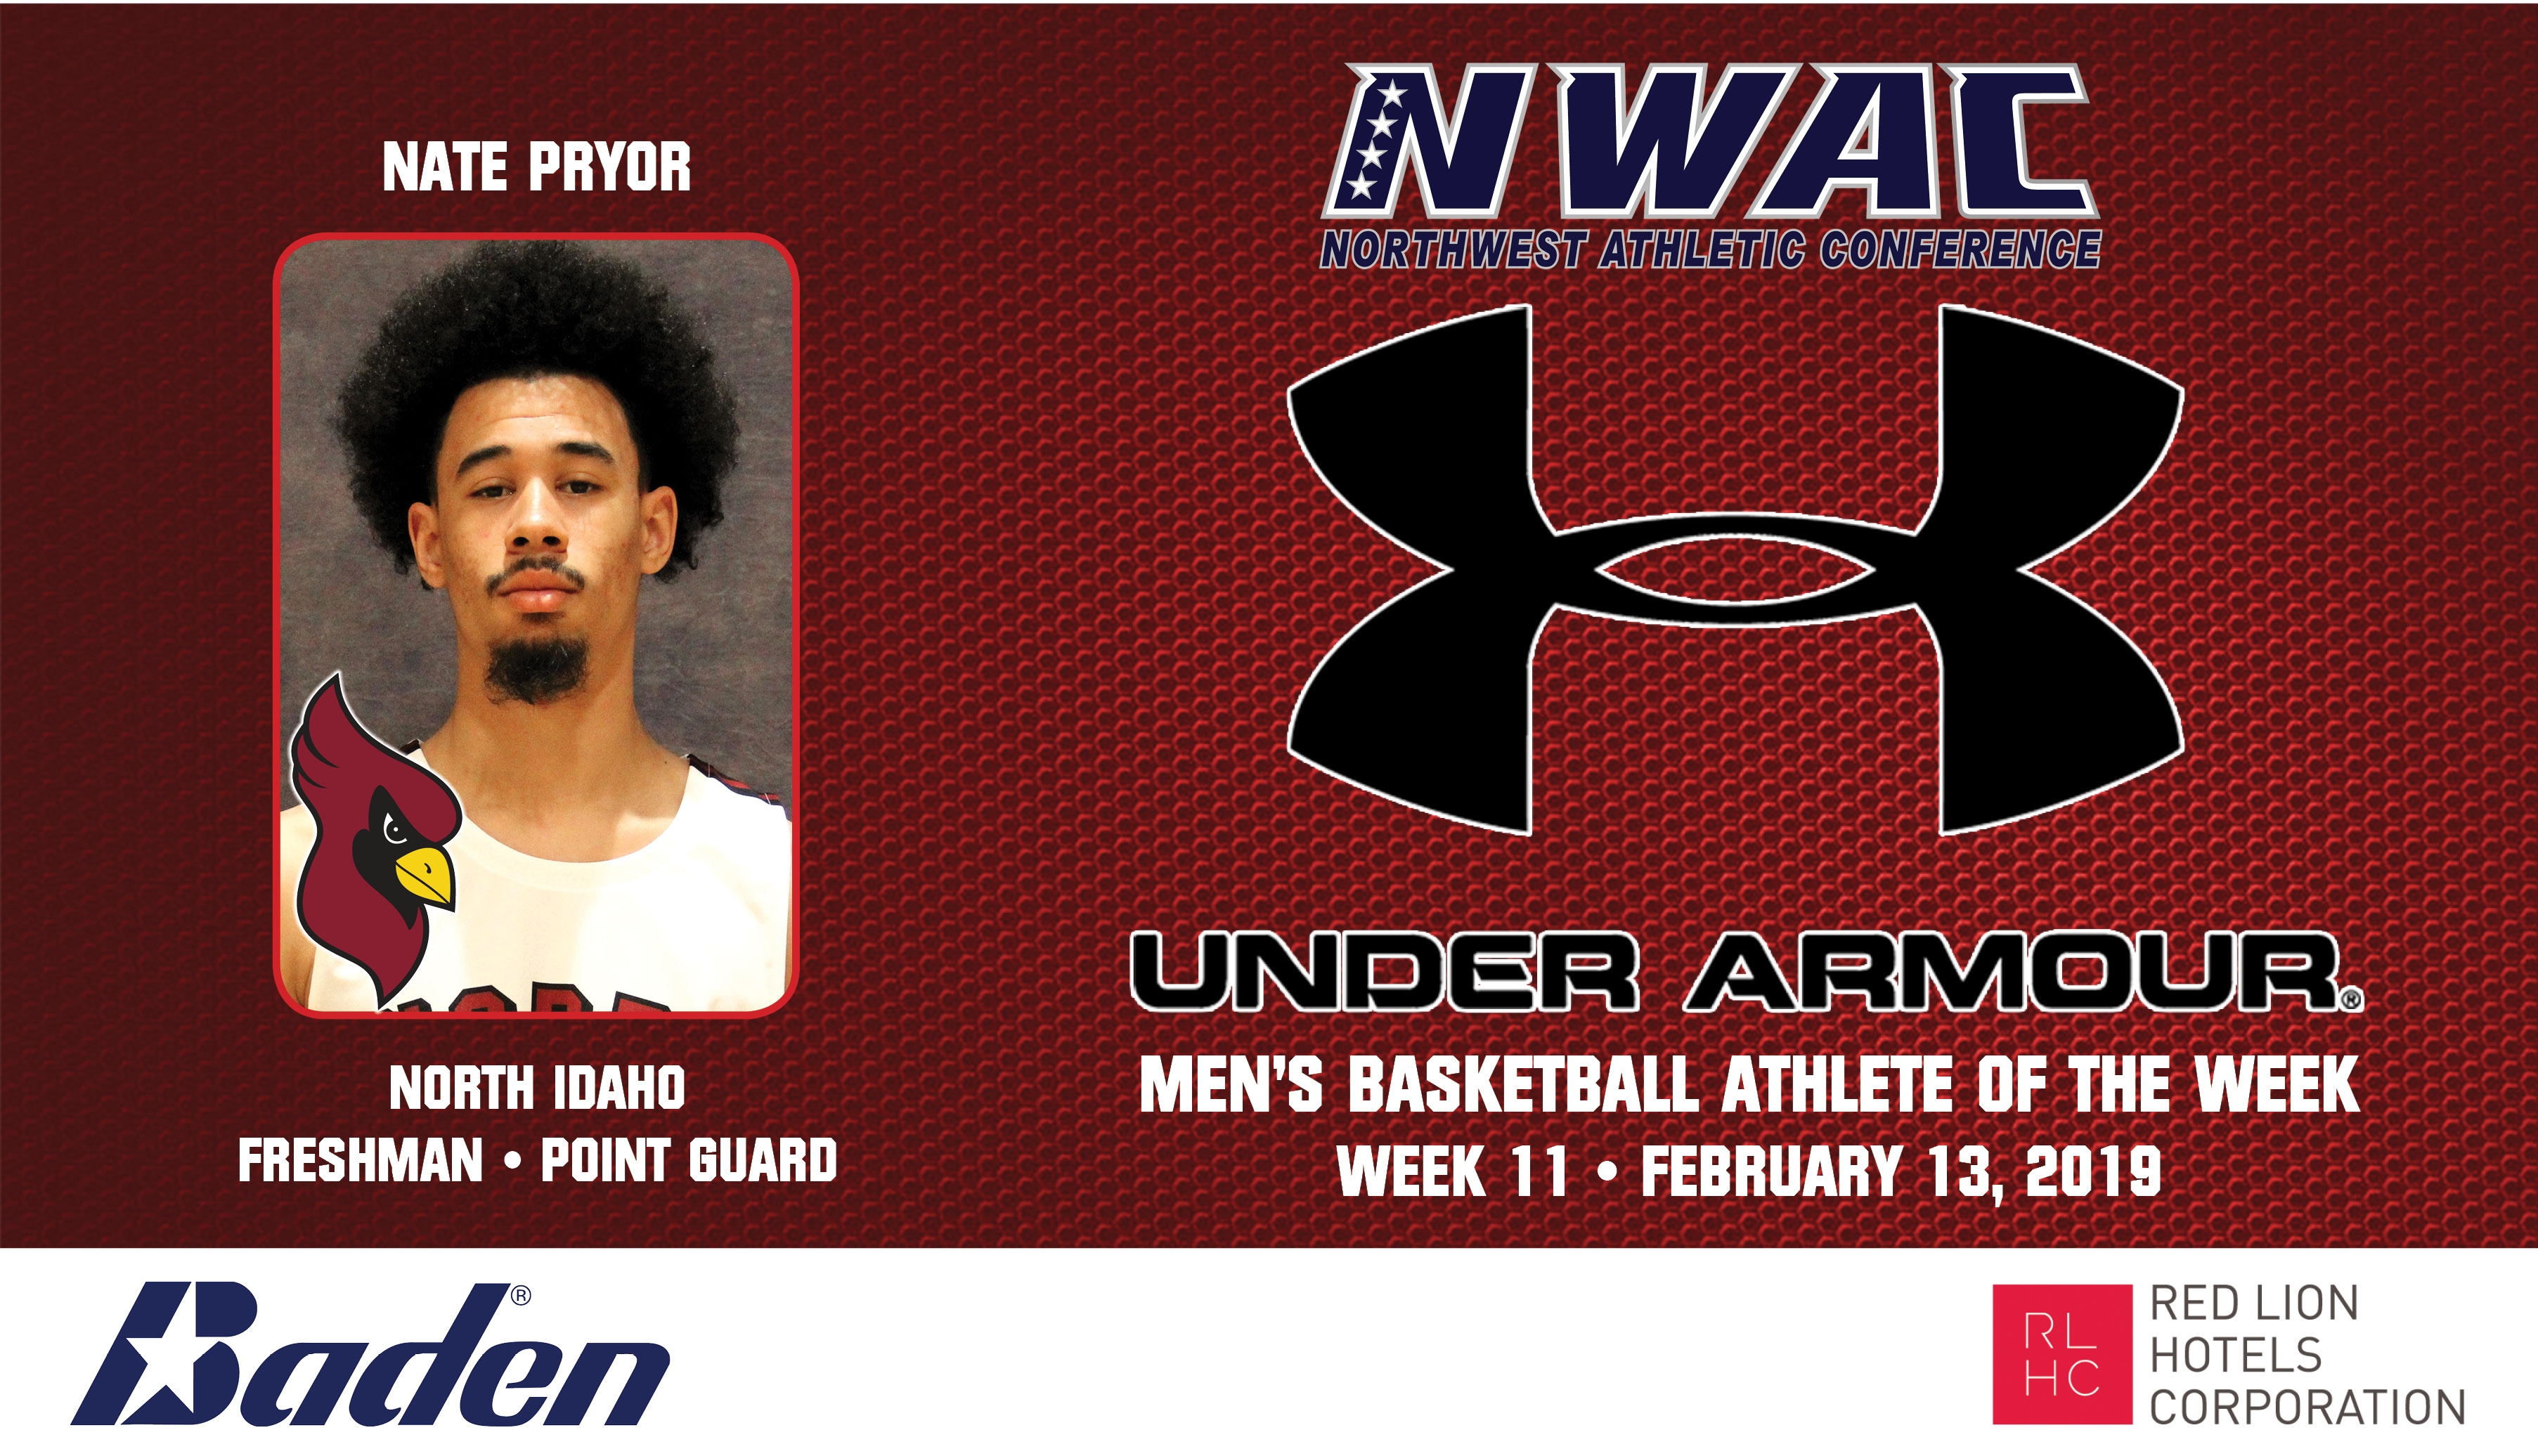 Nate Pryor Under Armour photo